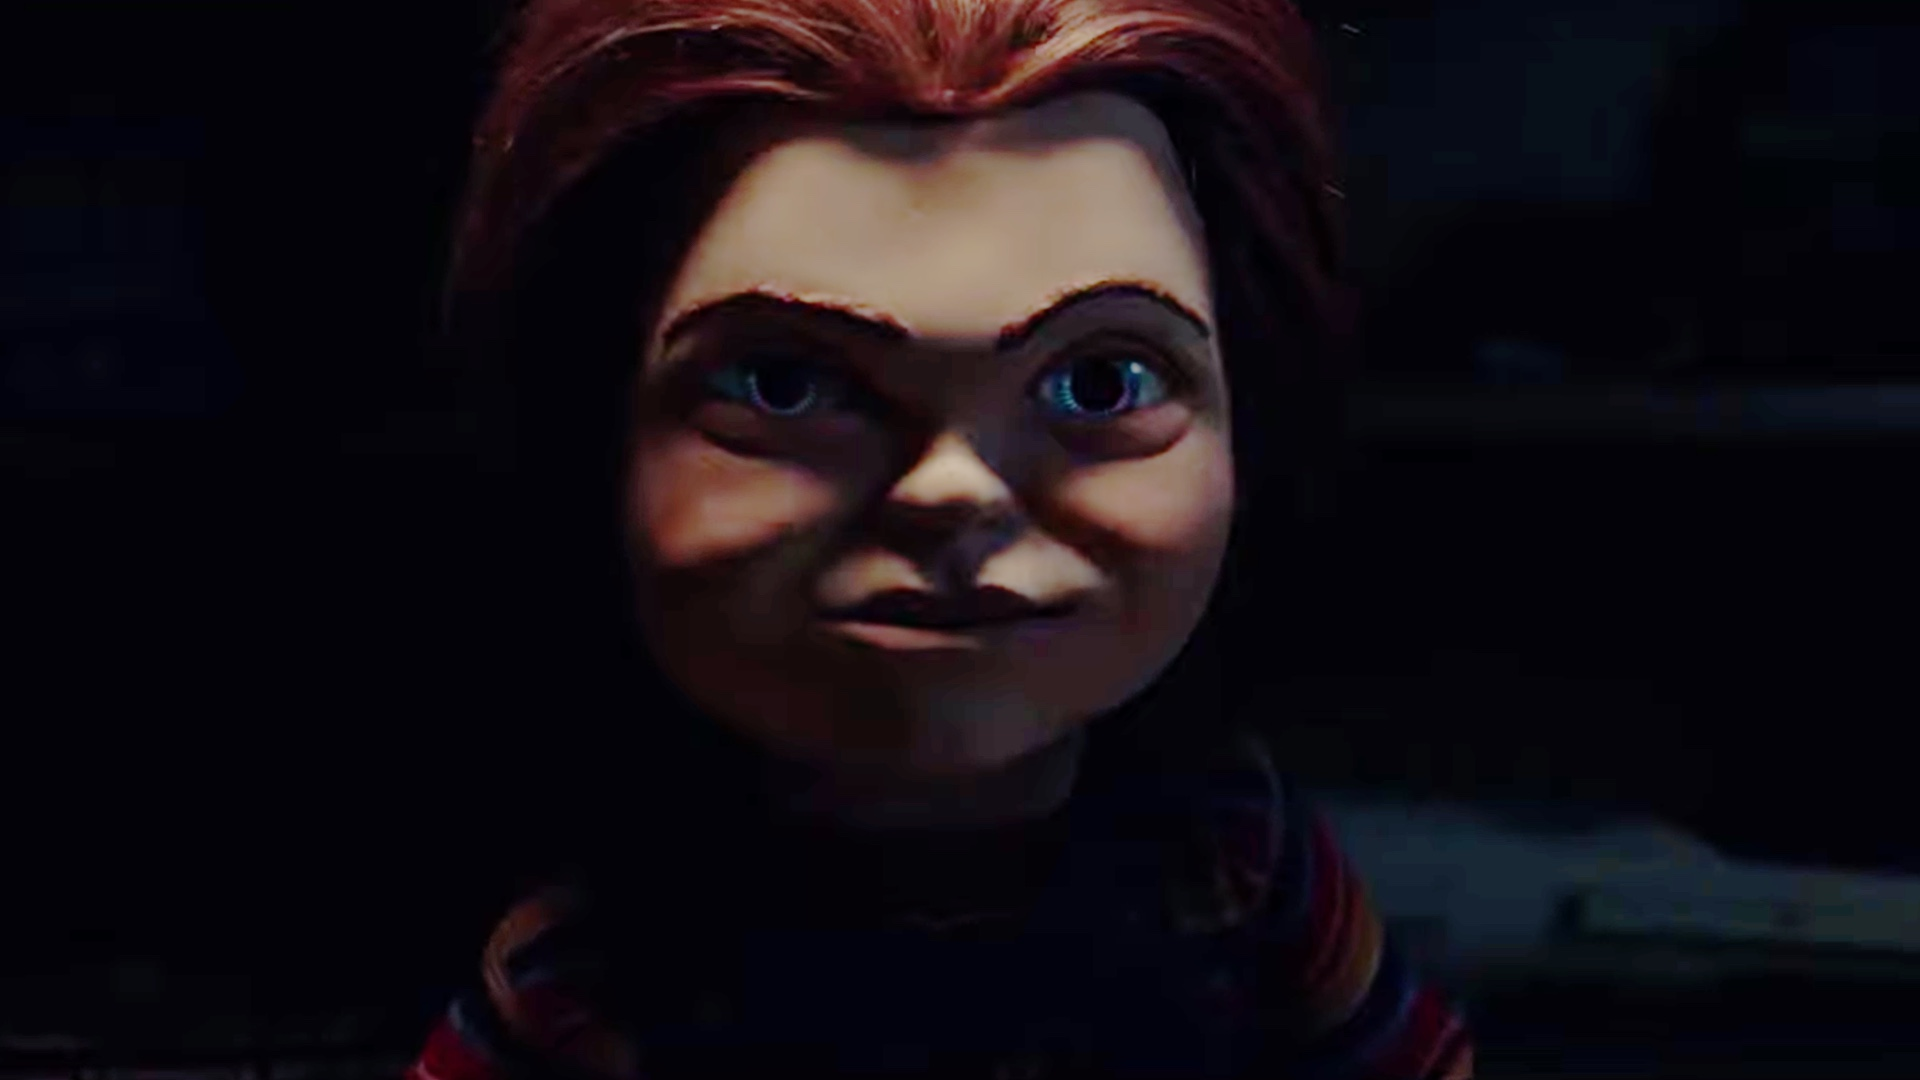 chucky-is-unleashed-an-on-a-murder-spree-in-full-trailer-for-the-childs-play-reboot-social.jpg